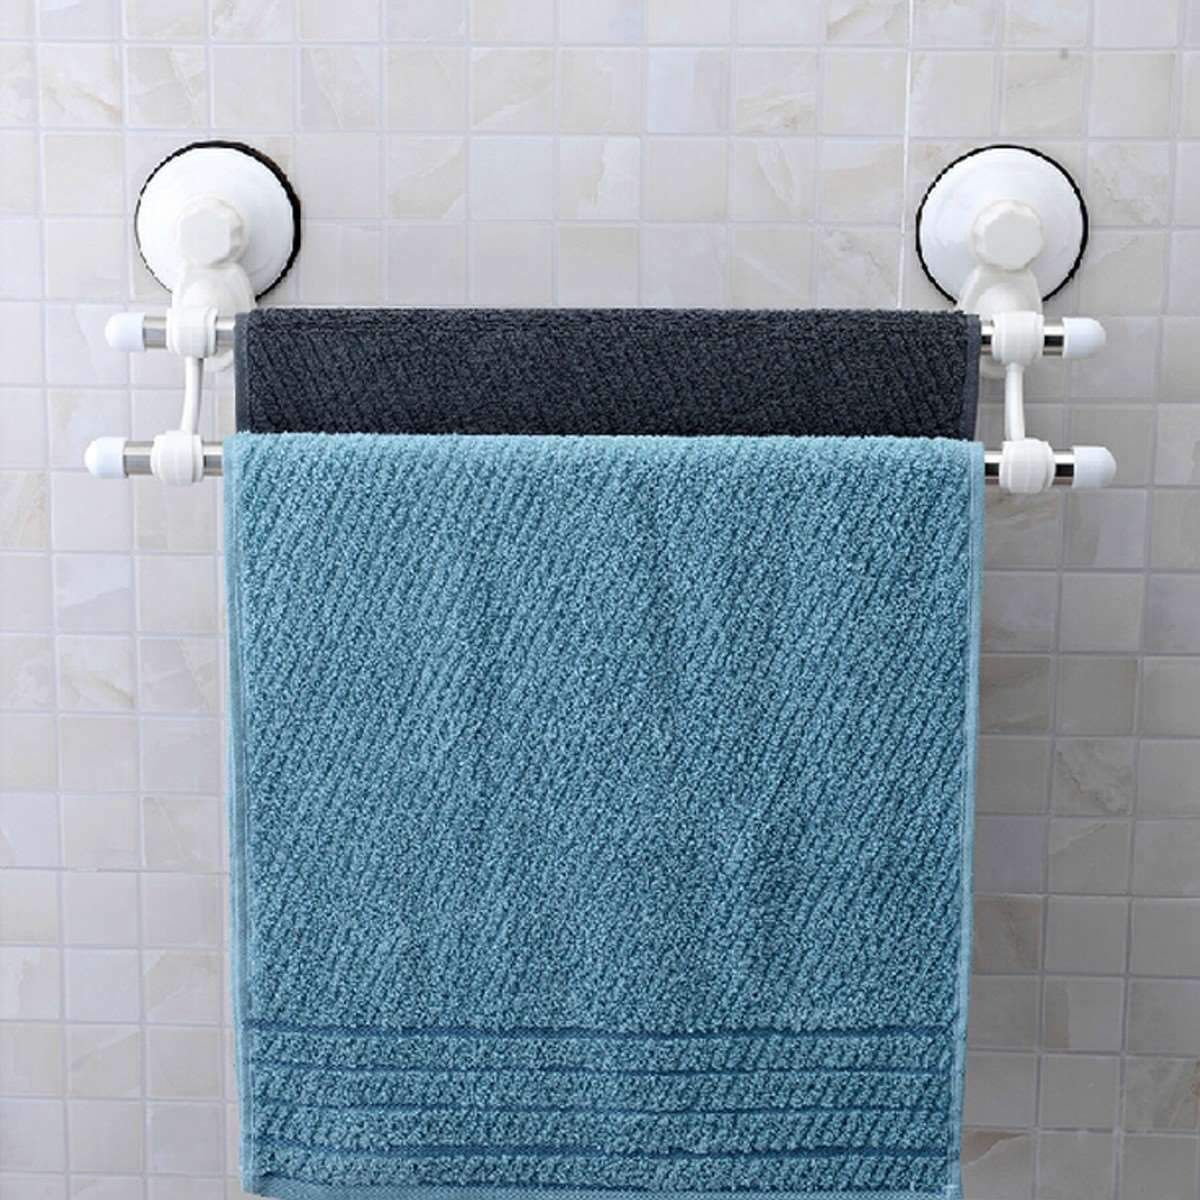 Buy Double Rod Suction Cup Stainless Steel Wall Mounted Bathroom ...